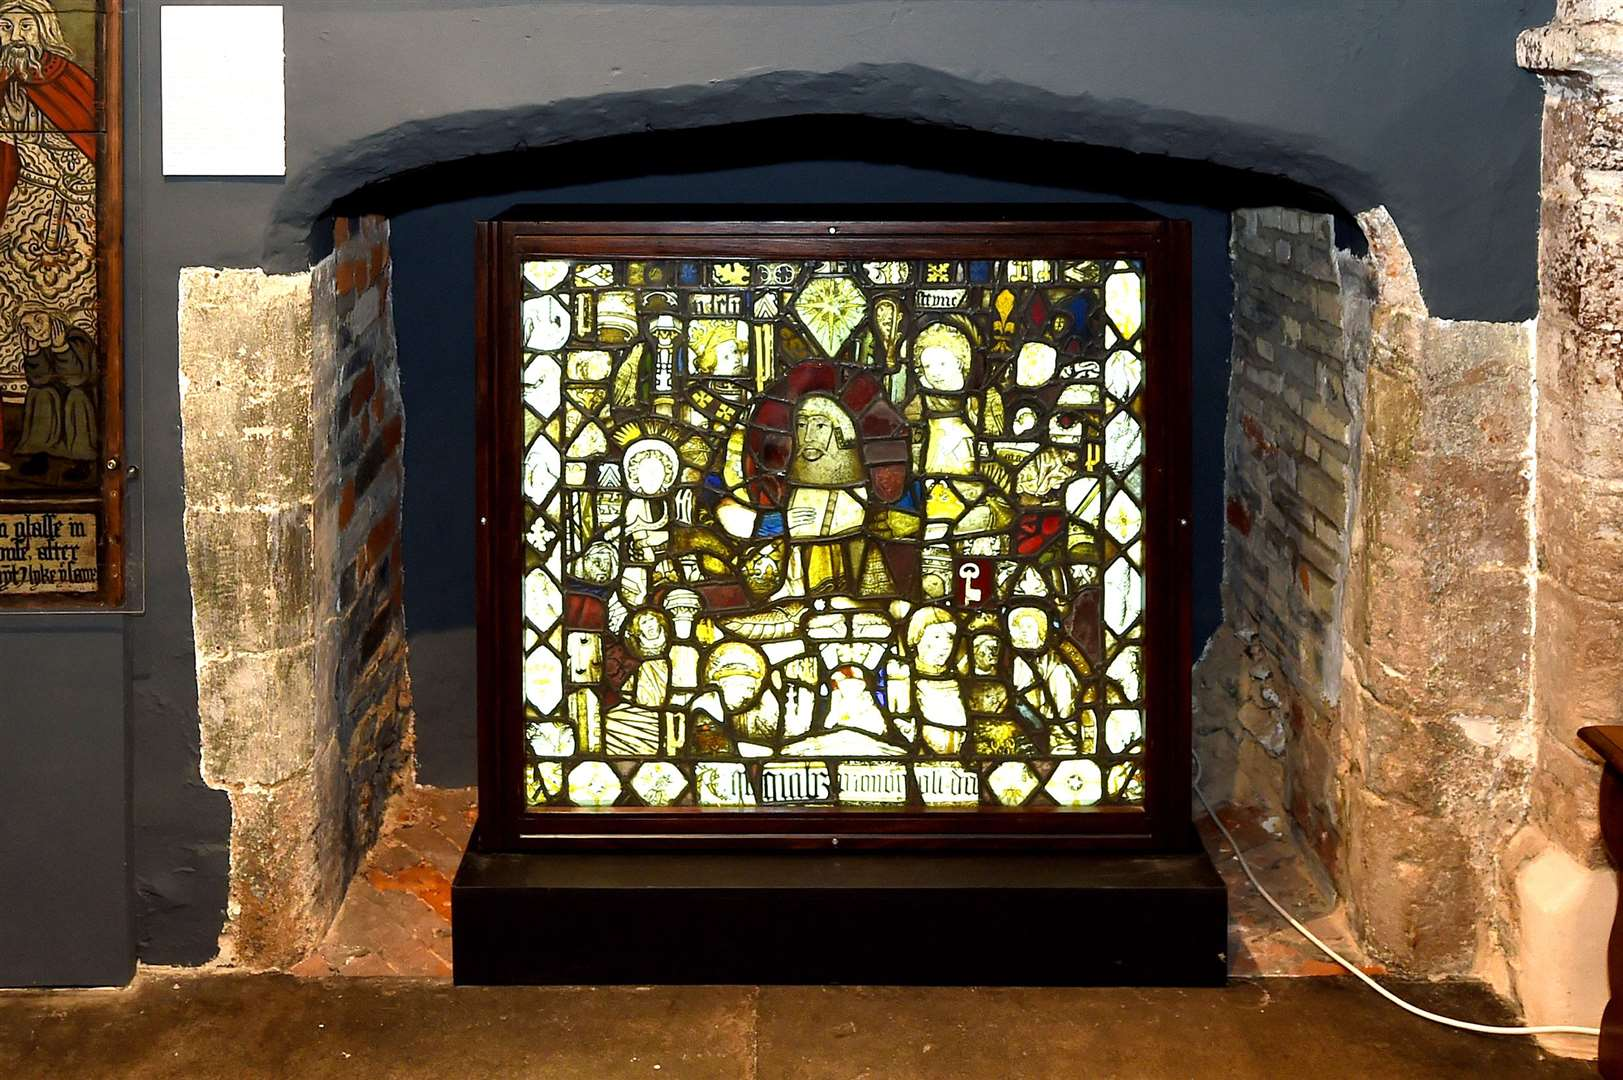 A mosaic of stained glass from the Abbey, dating back to the 14th-16th Century. Picture by Mecha Morton